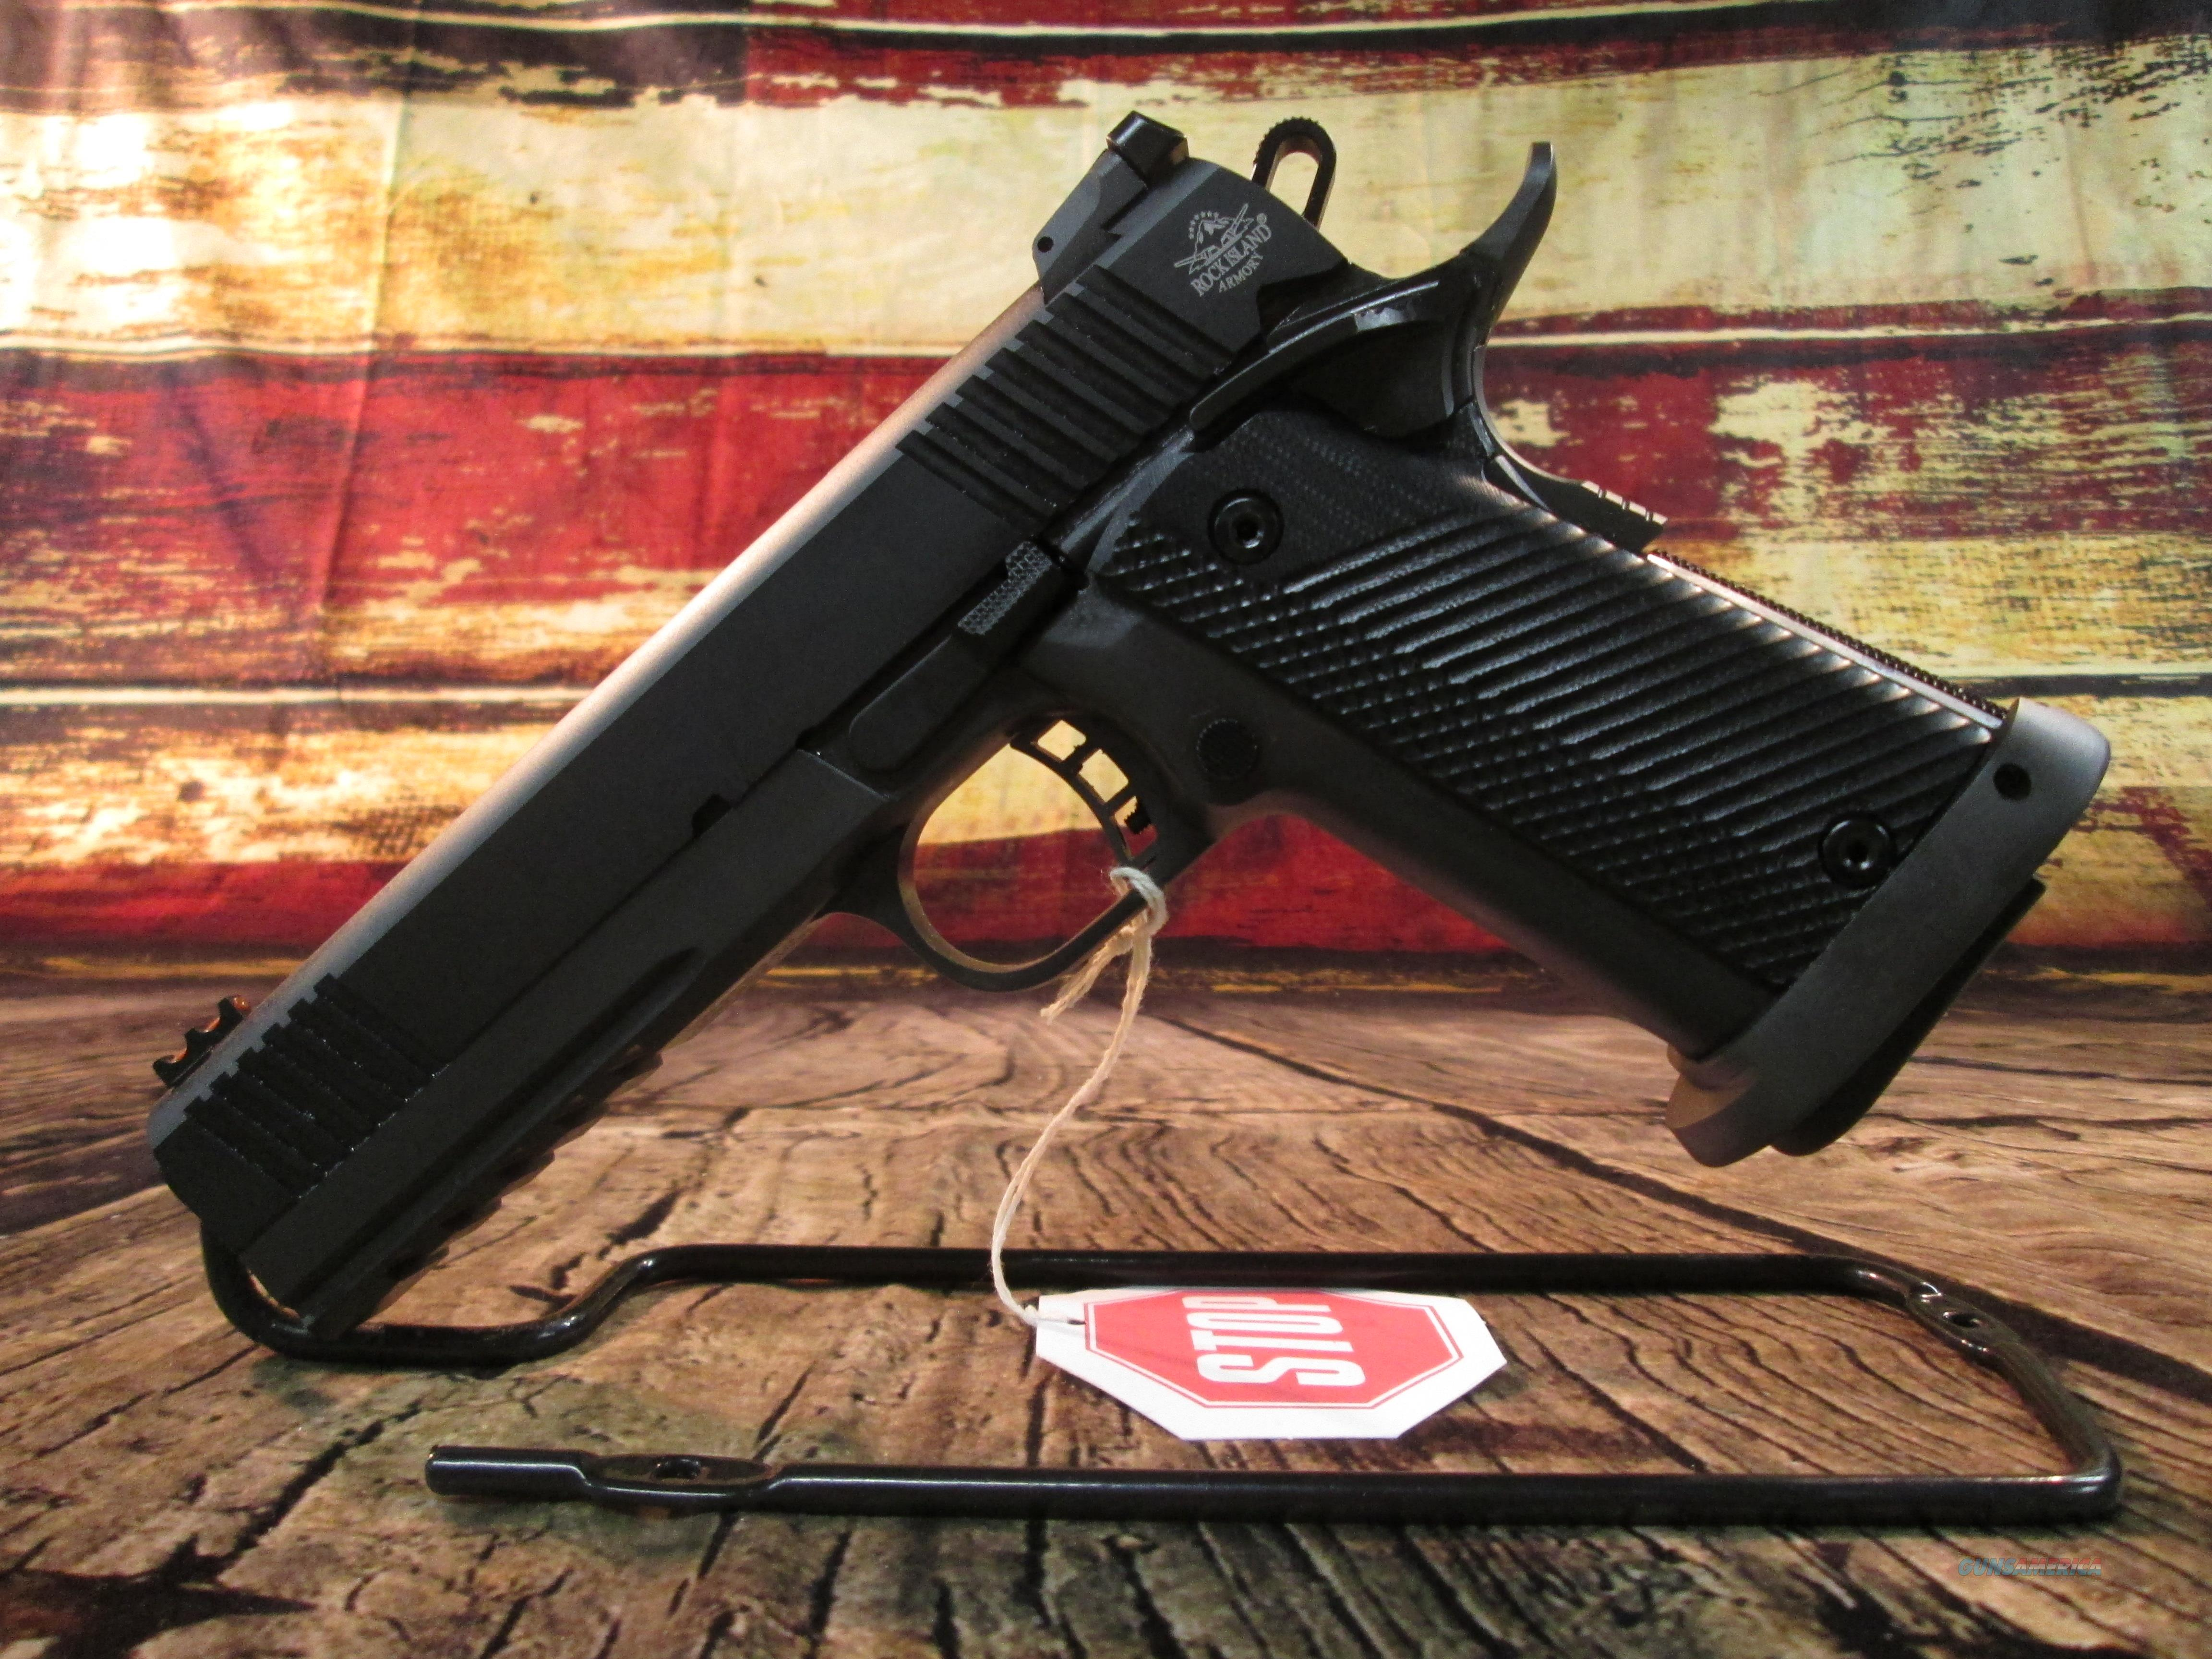 ROCK ISLAND TAC ULTRA 45 ACP NEW (51567)  Guns > Pistols > Armscor Pistols > Rock Island